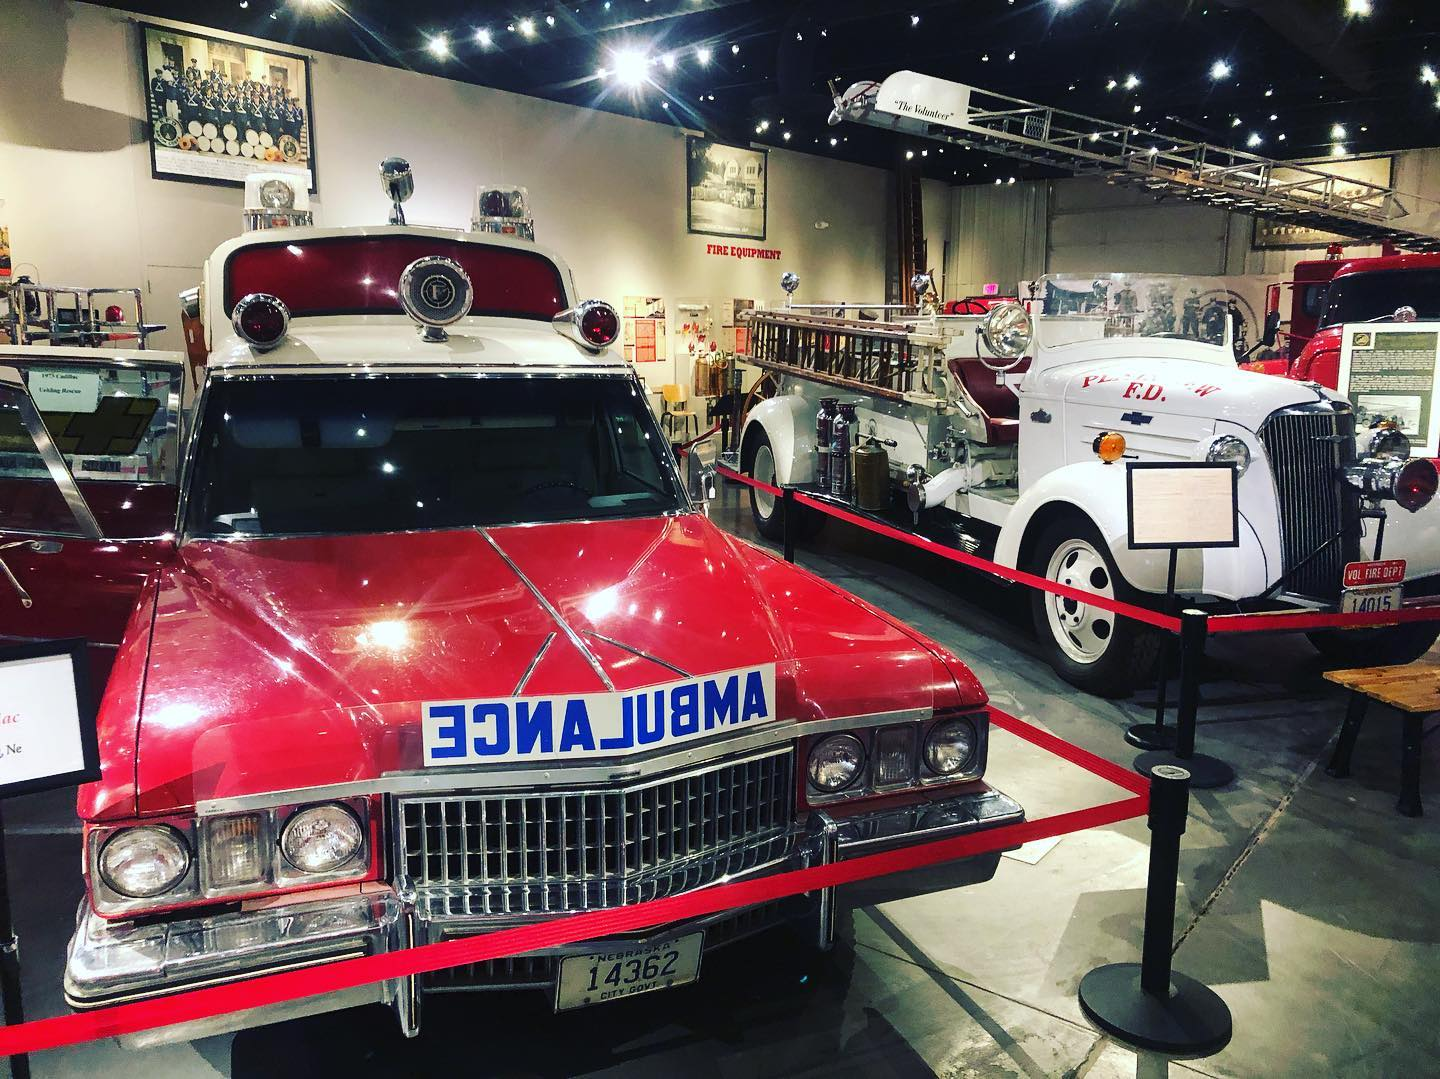 A photo of the Nebraska Firefighters Museum in Kearney, Nebraska